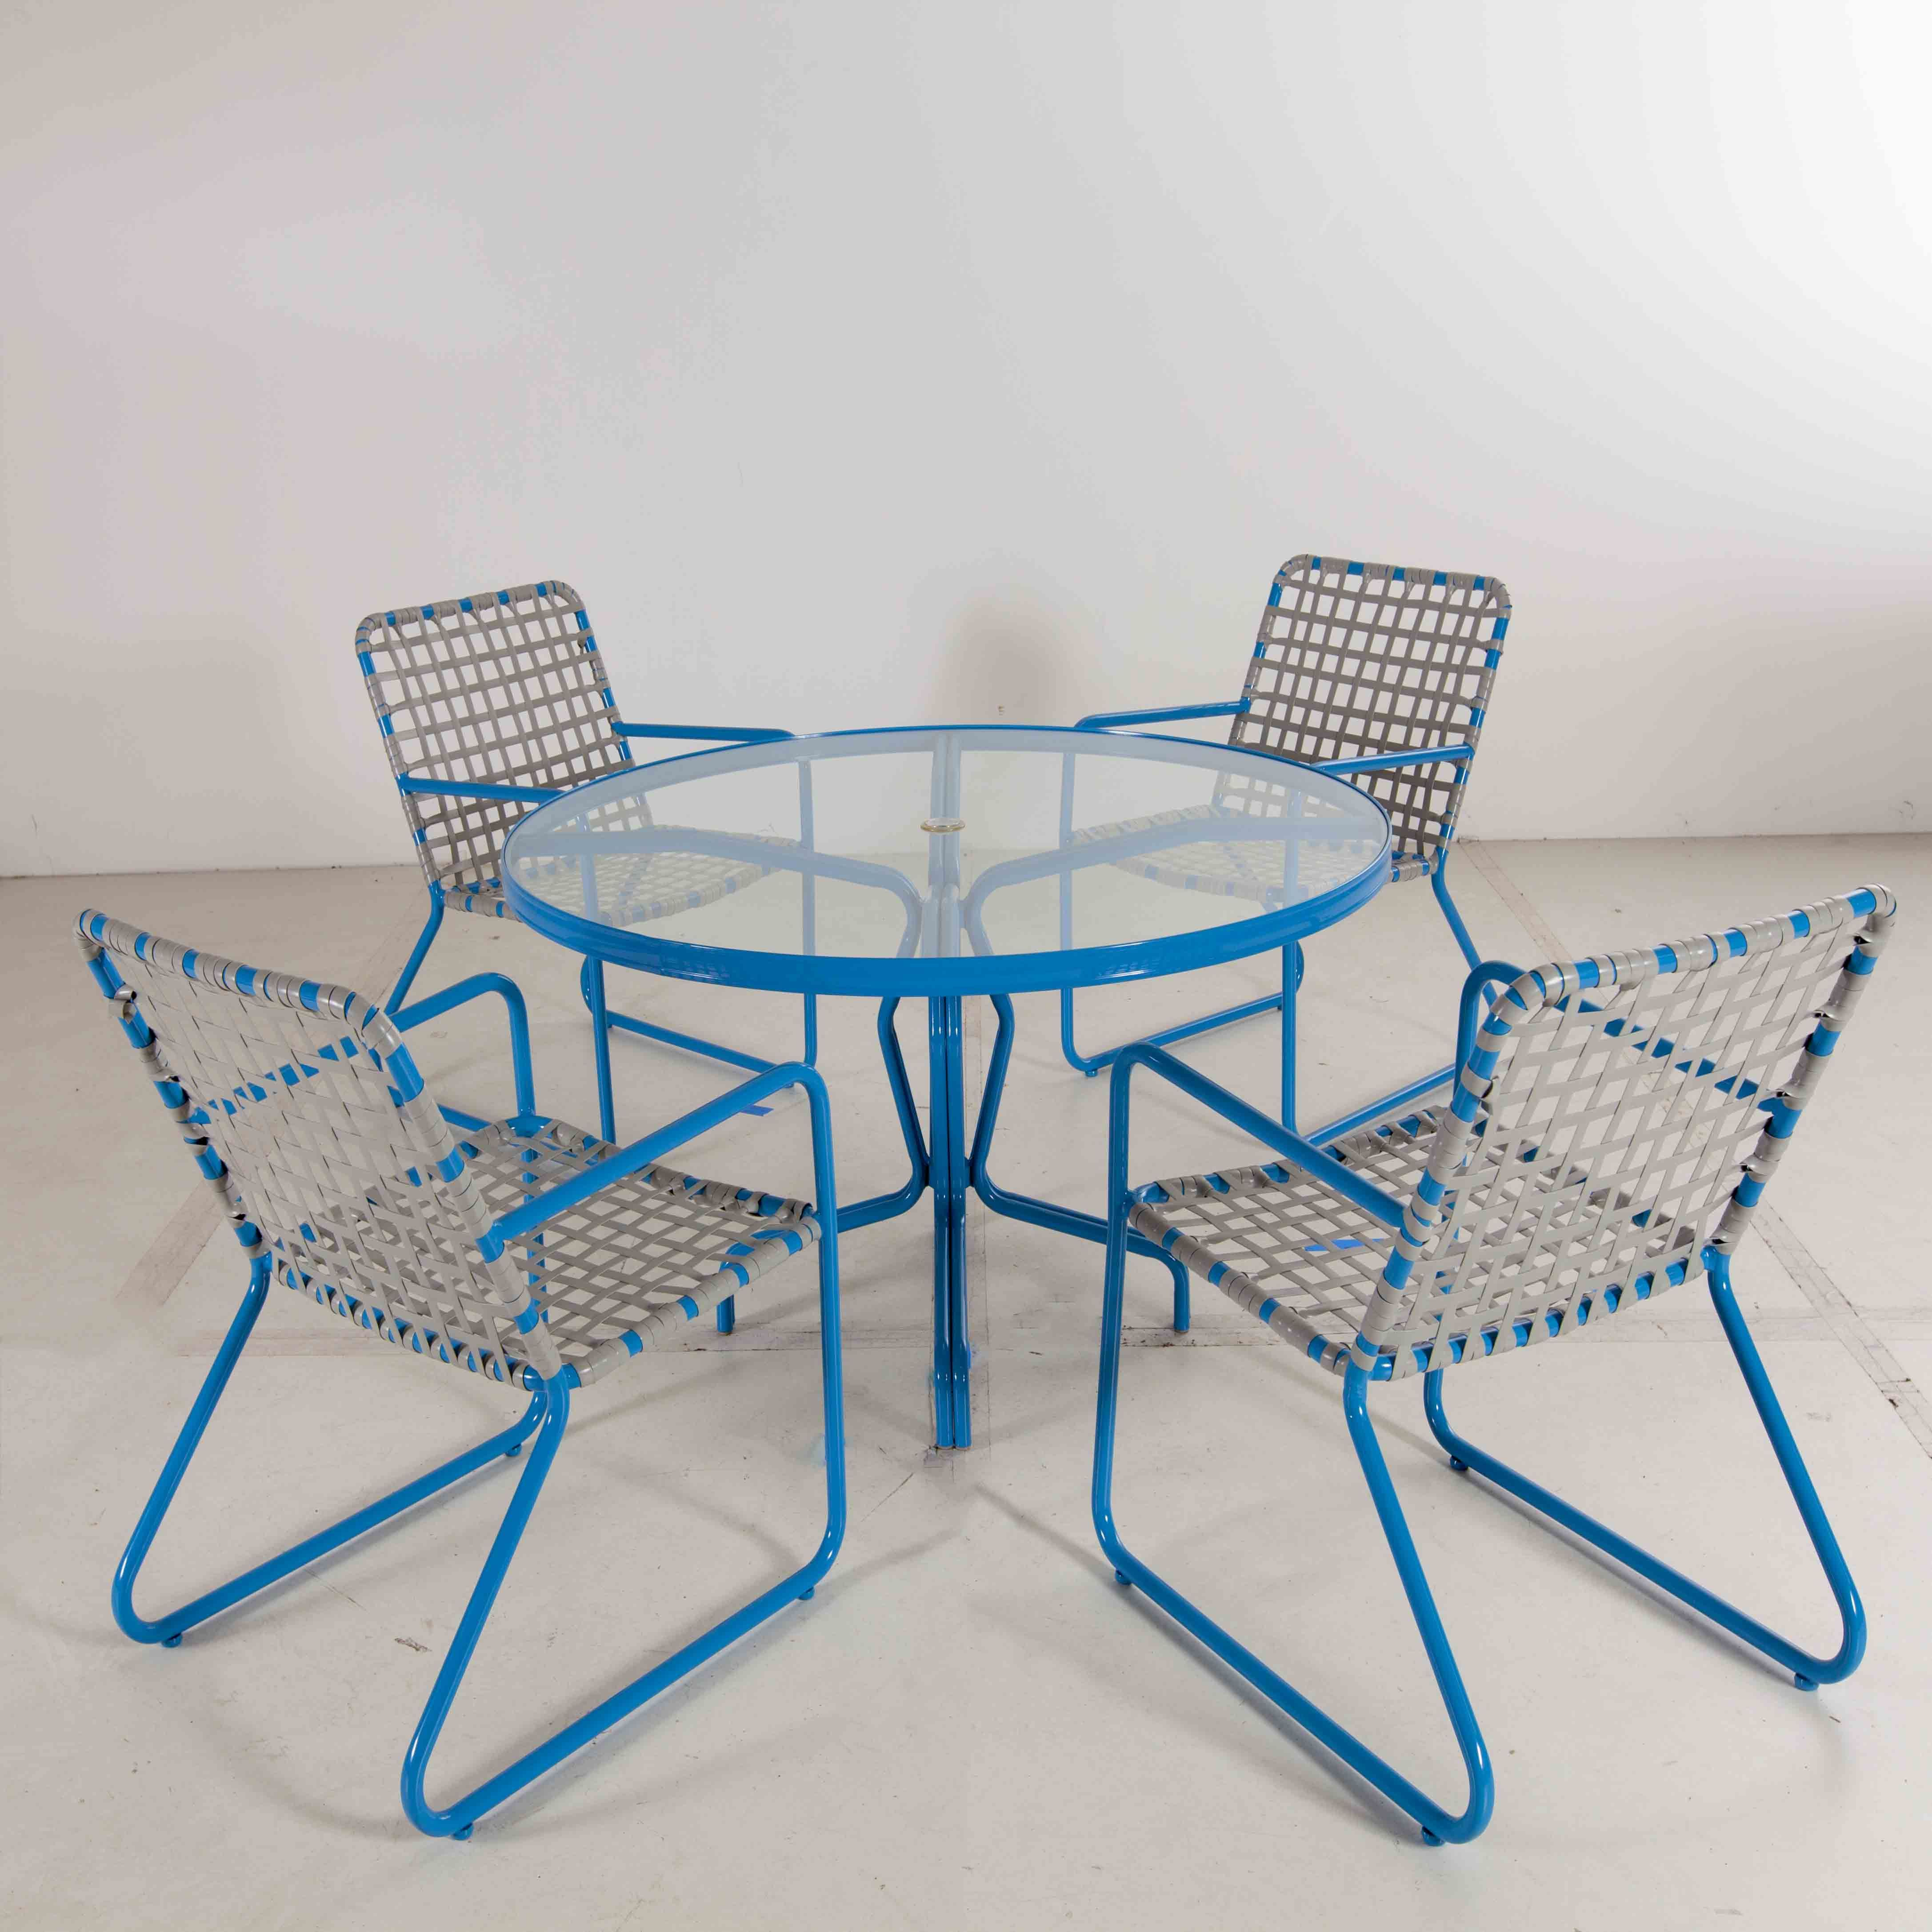 full ideas furniture adirondack patio side w metal table folding clearance free small of size mesh retro plans